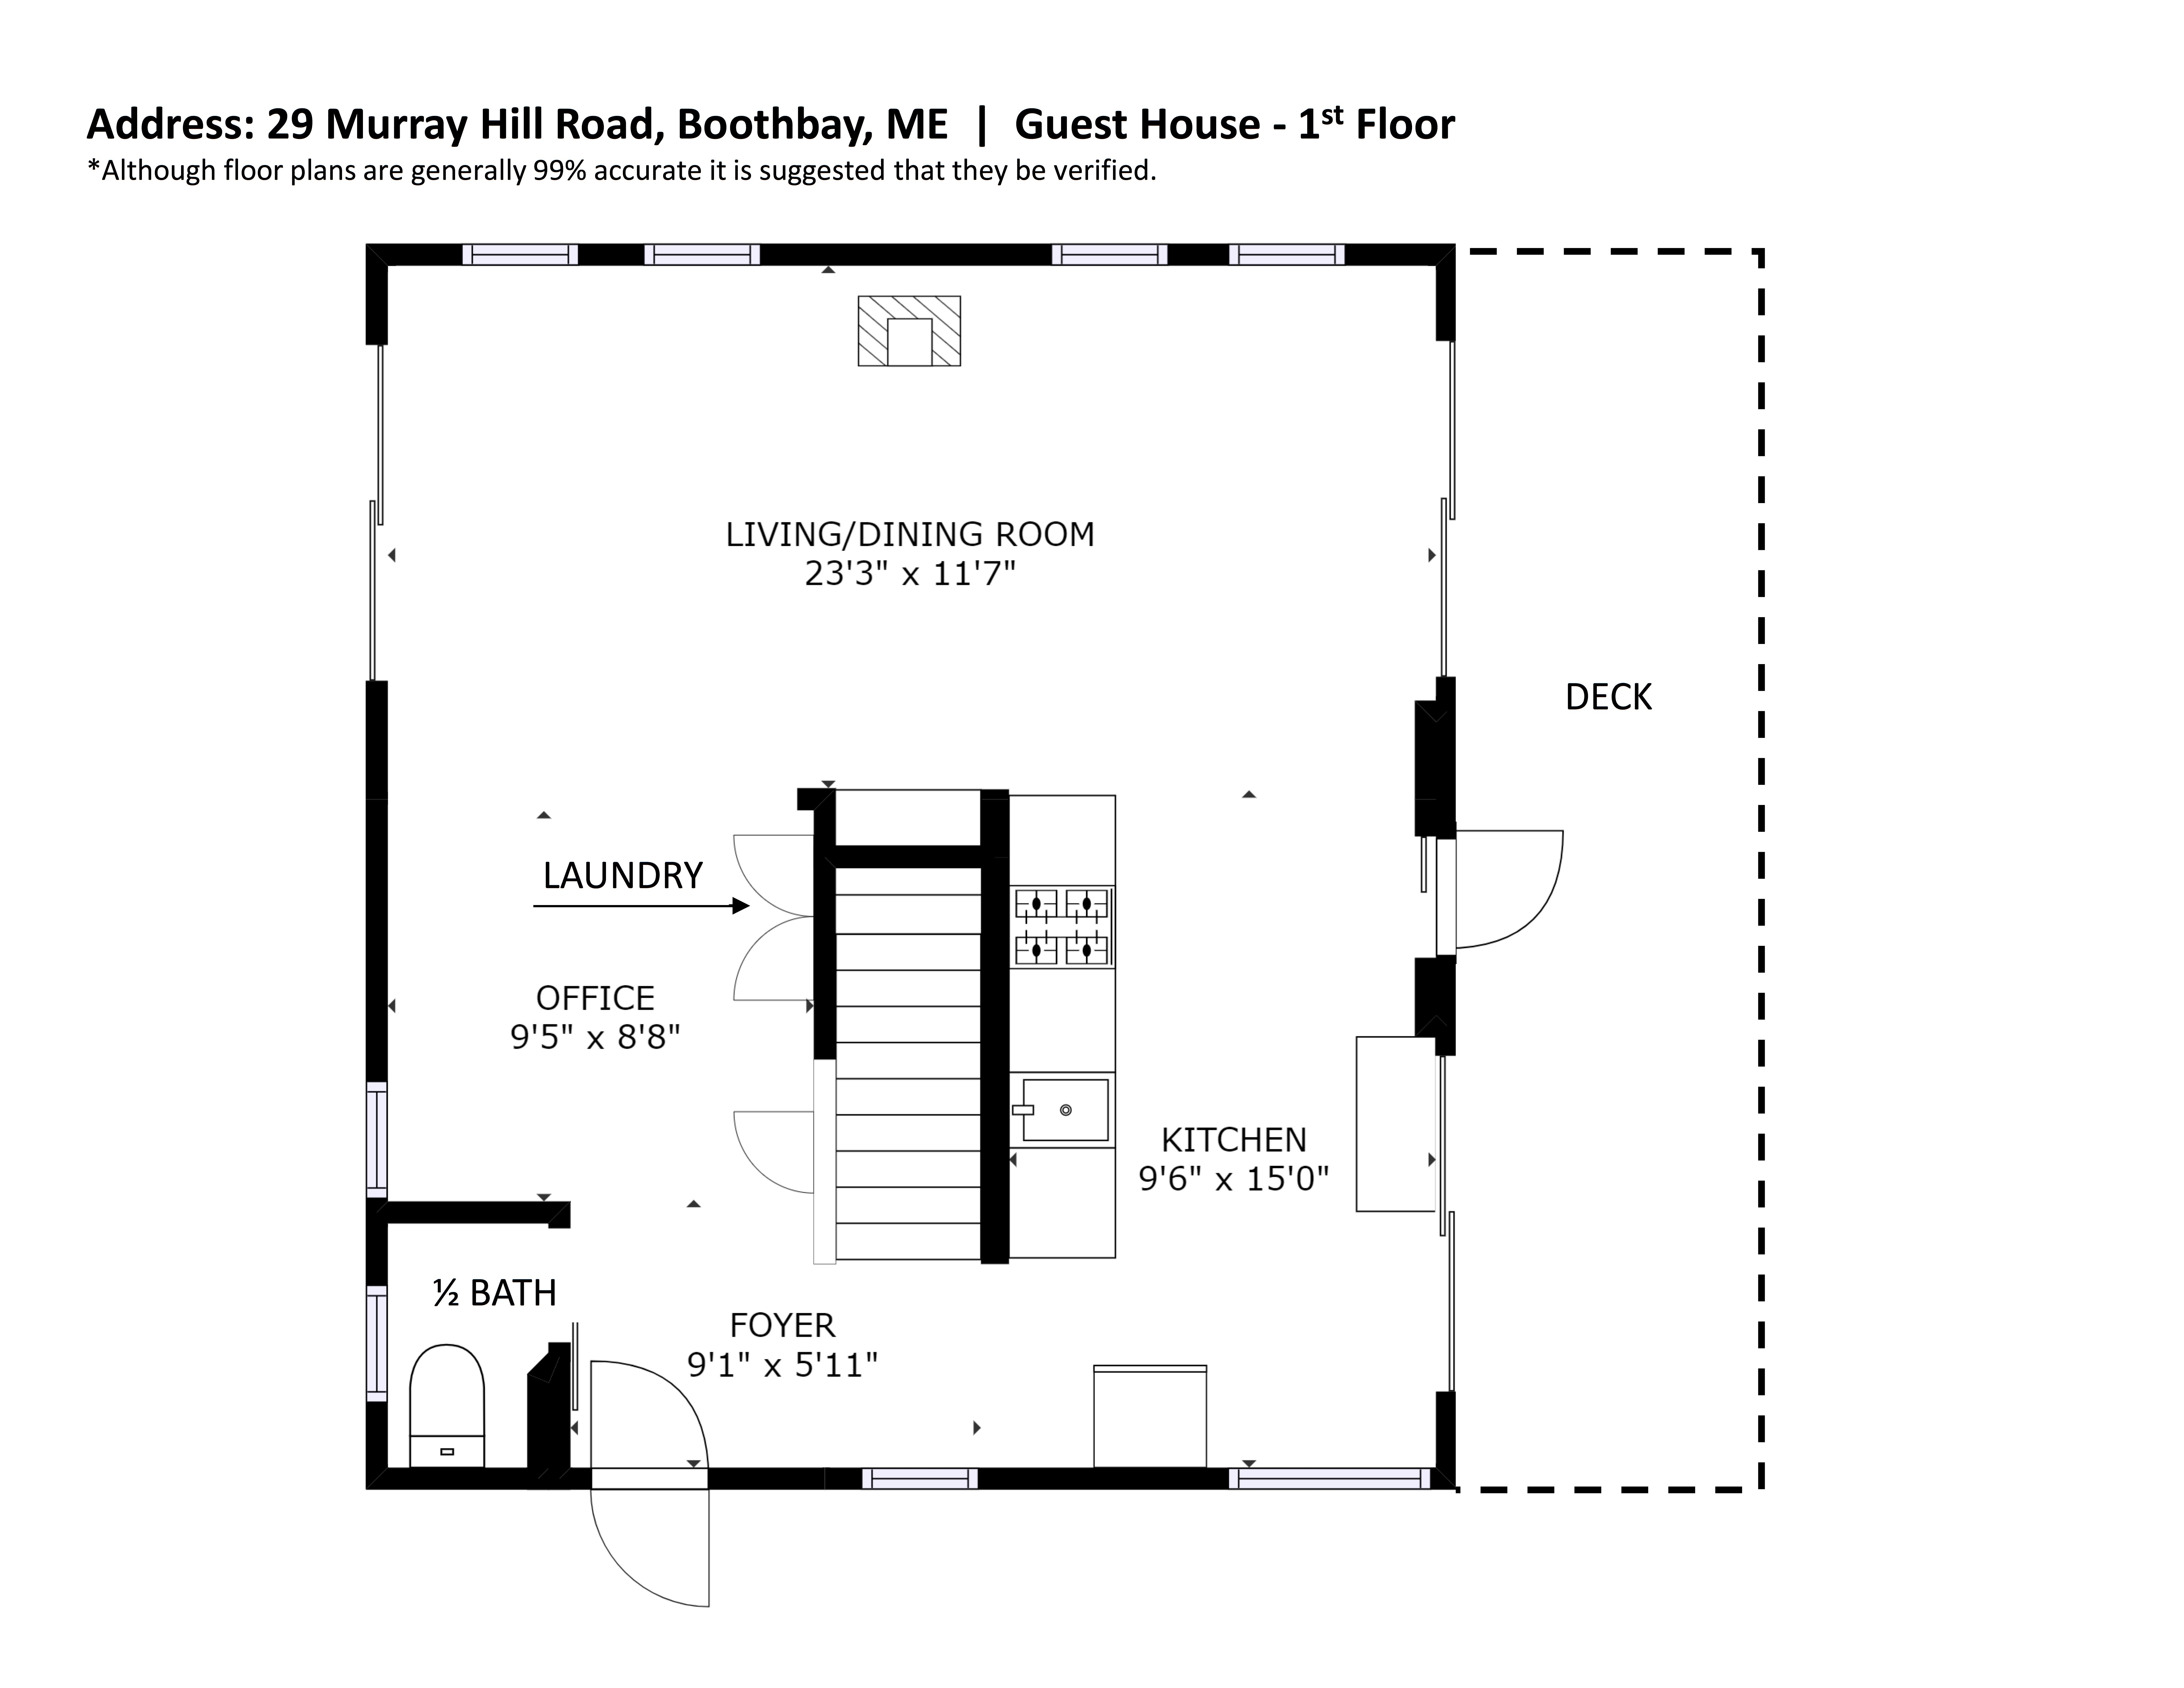 29 murray hill road east boothbay me guest house floor plan